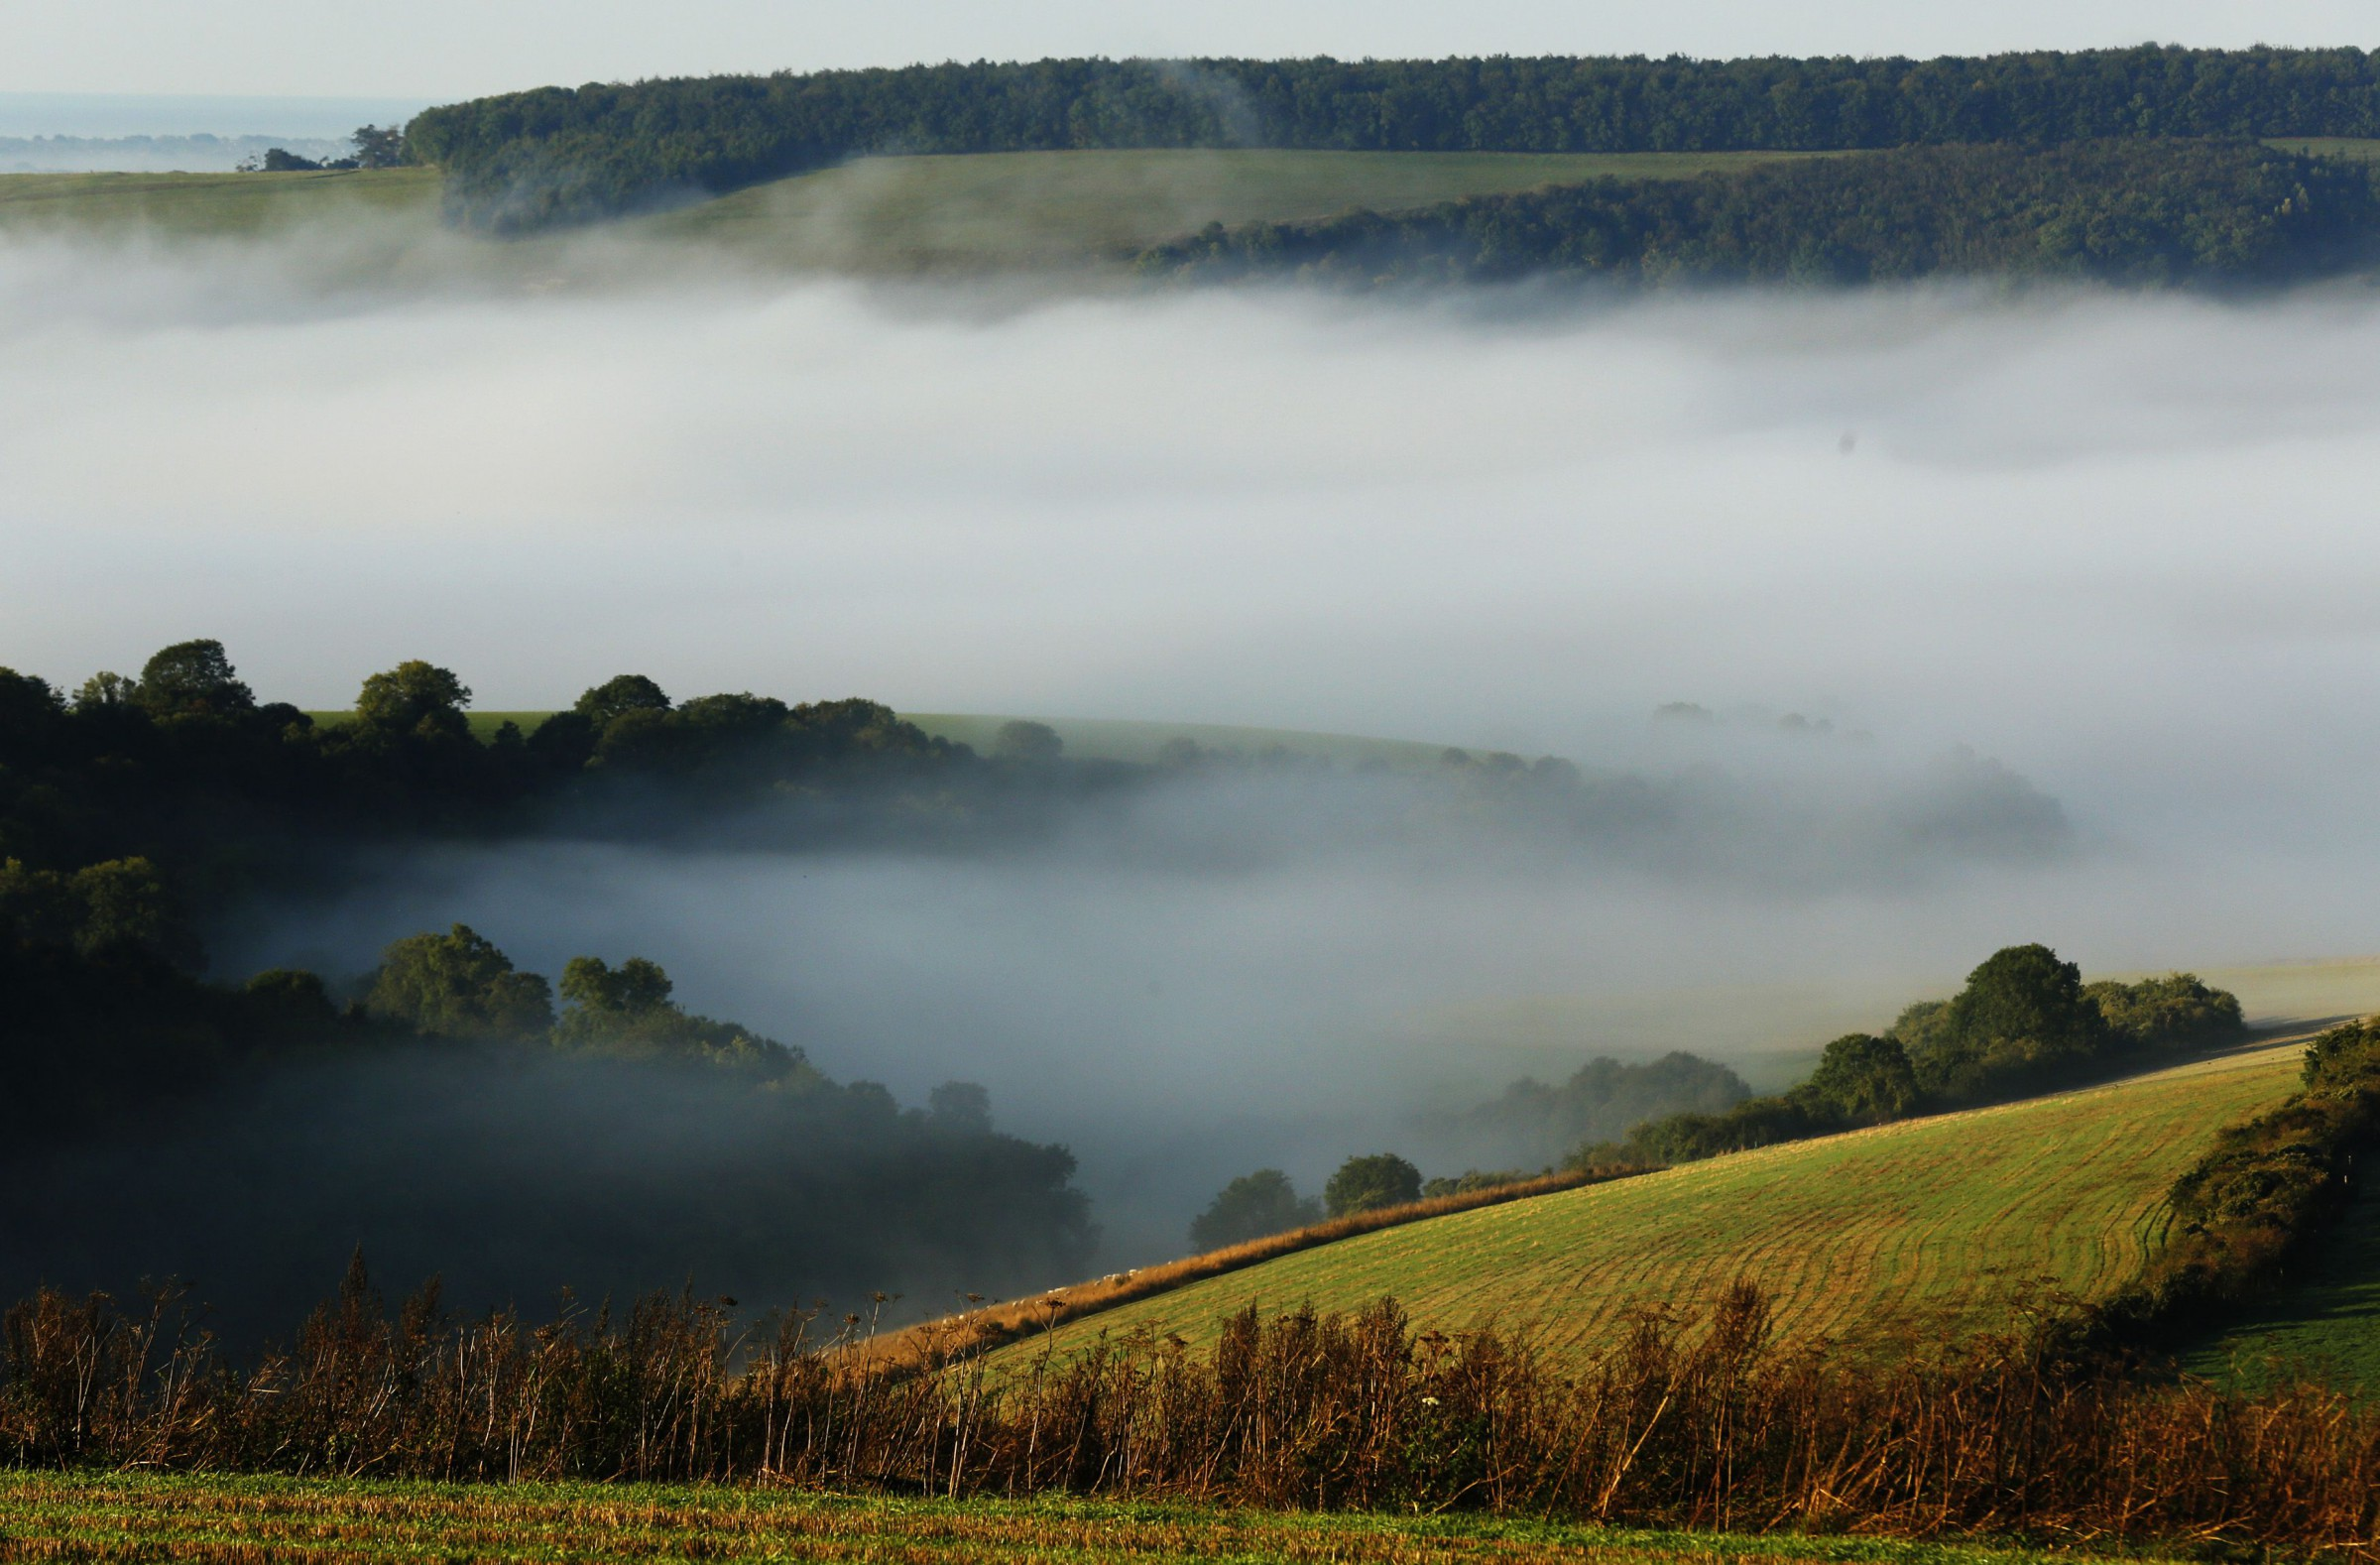 Autumn mists hang over villages and the countryside in the South Downs National Park near Amberley in Southern England October 7, 2013.